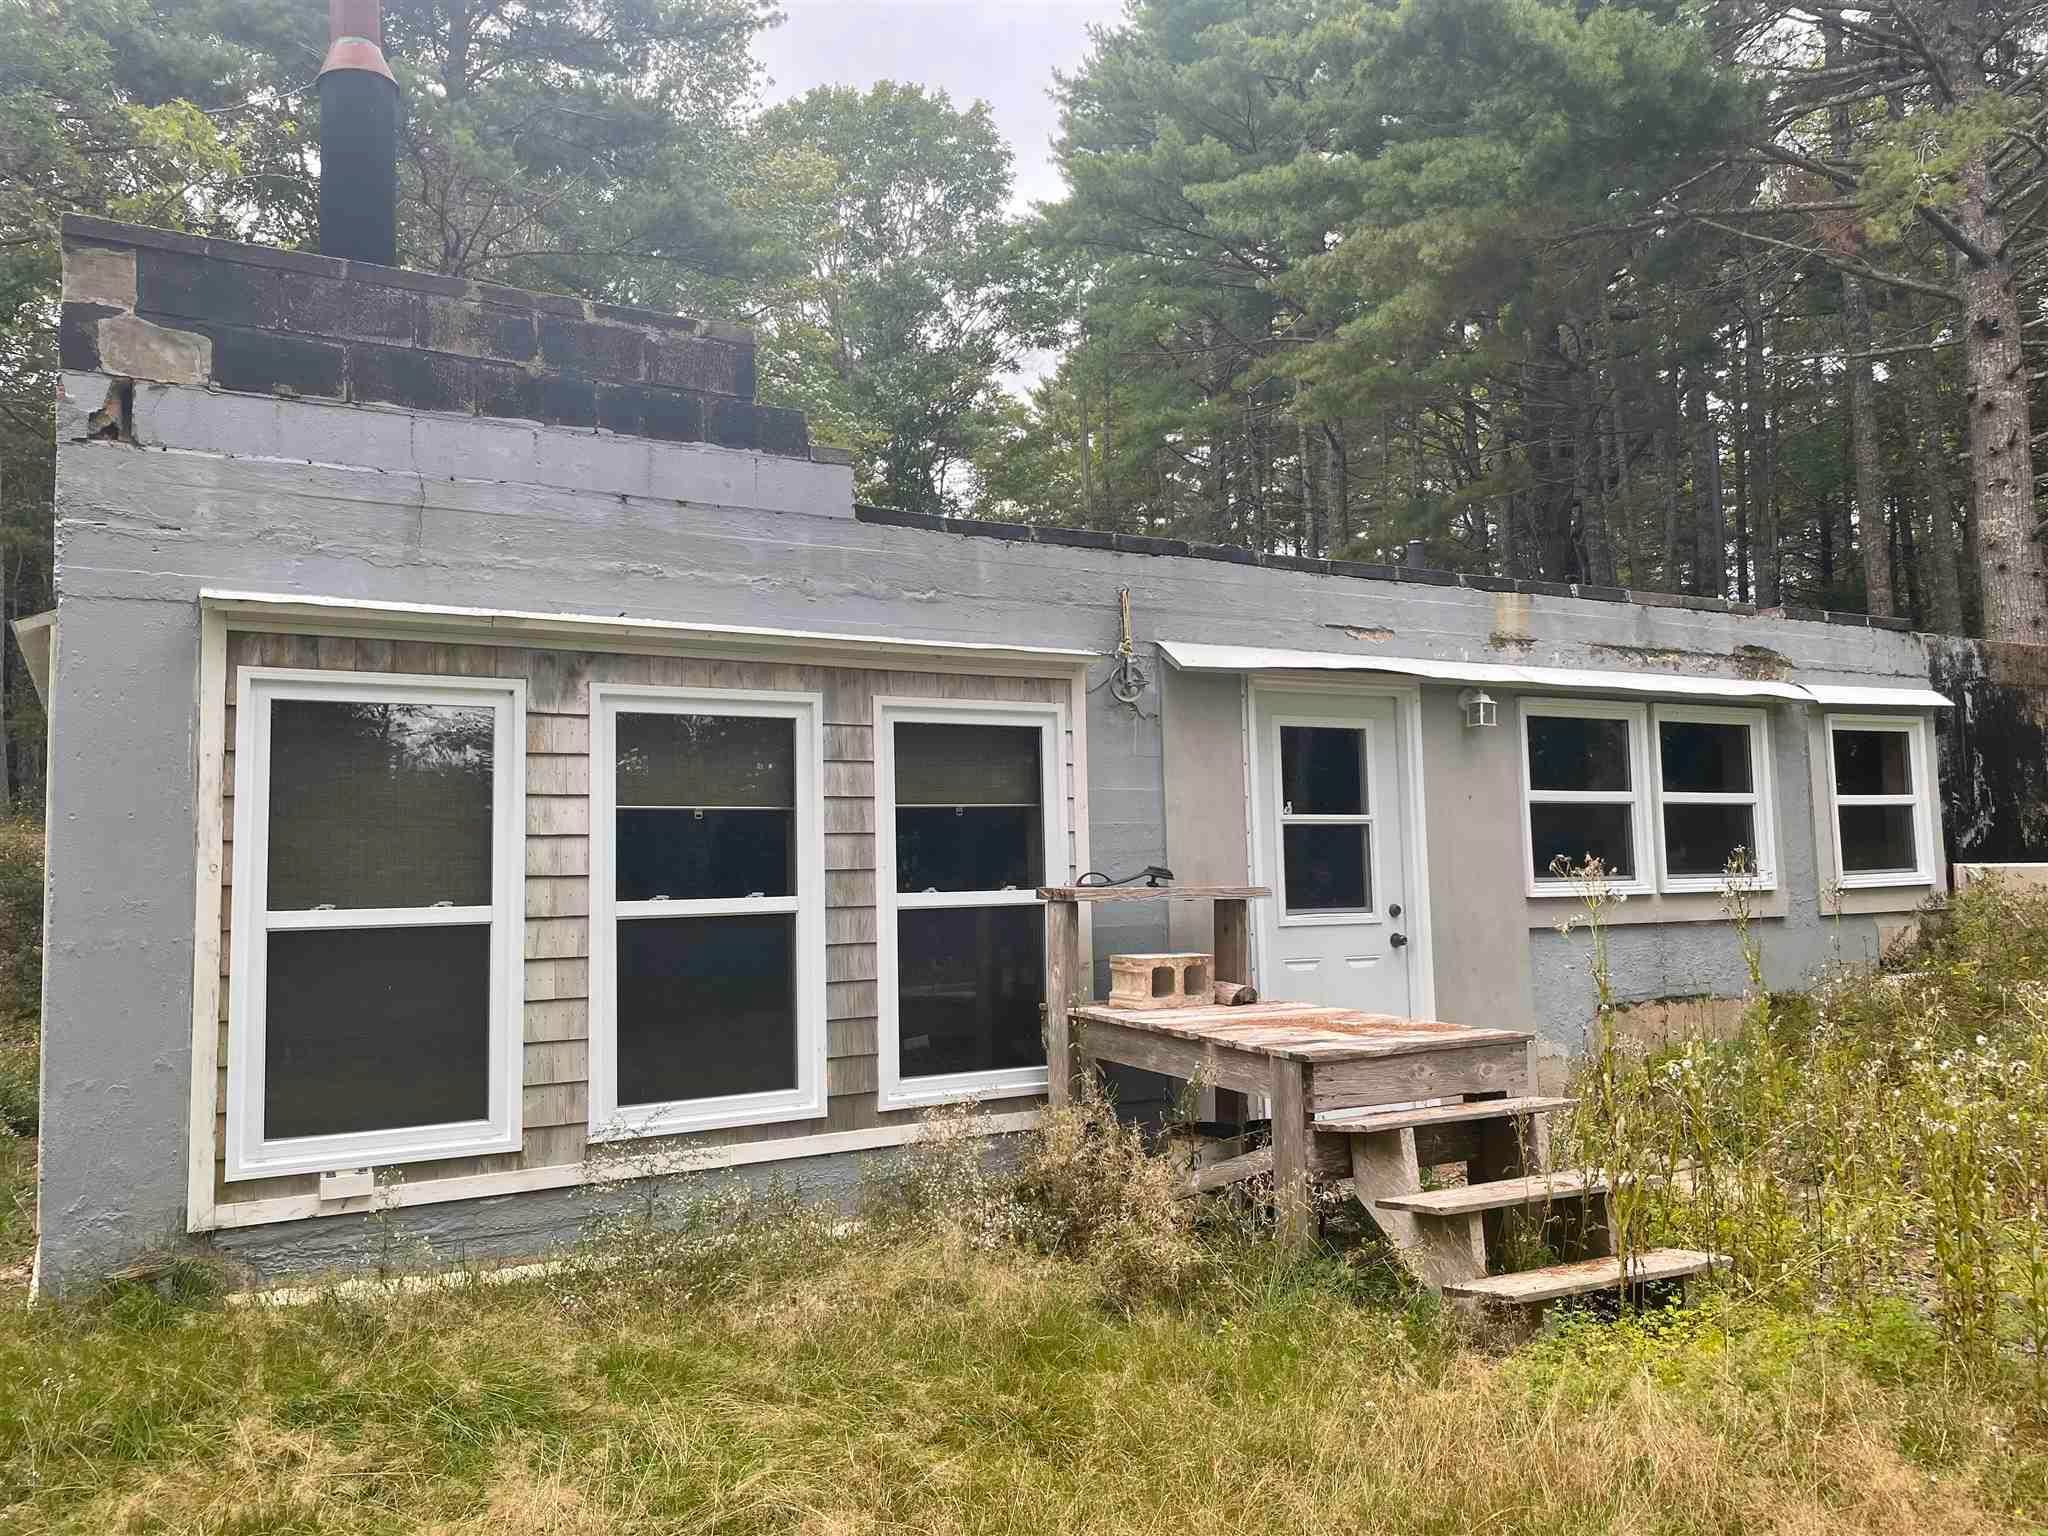 Main Photo: 4428 hwy 210 in Buckfield: 406-Queens County Residential for sale (South Shore)  : MLS®# 202125032